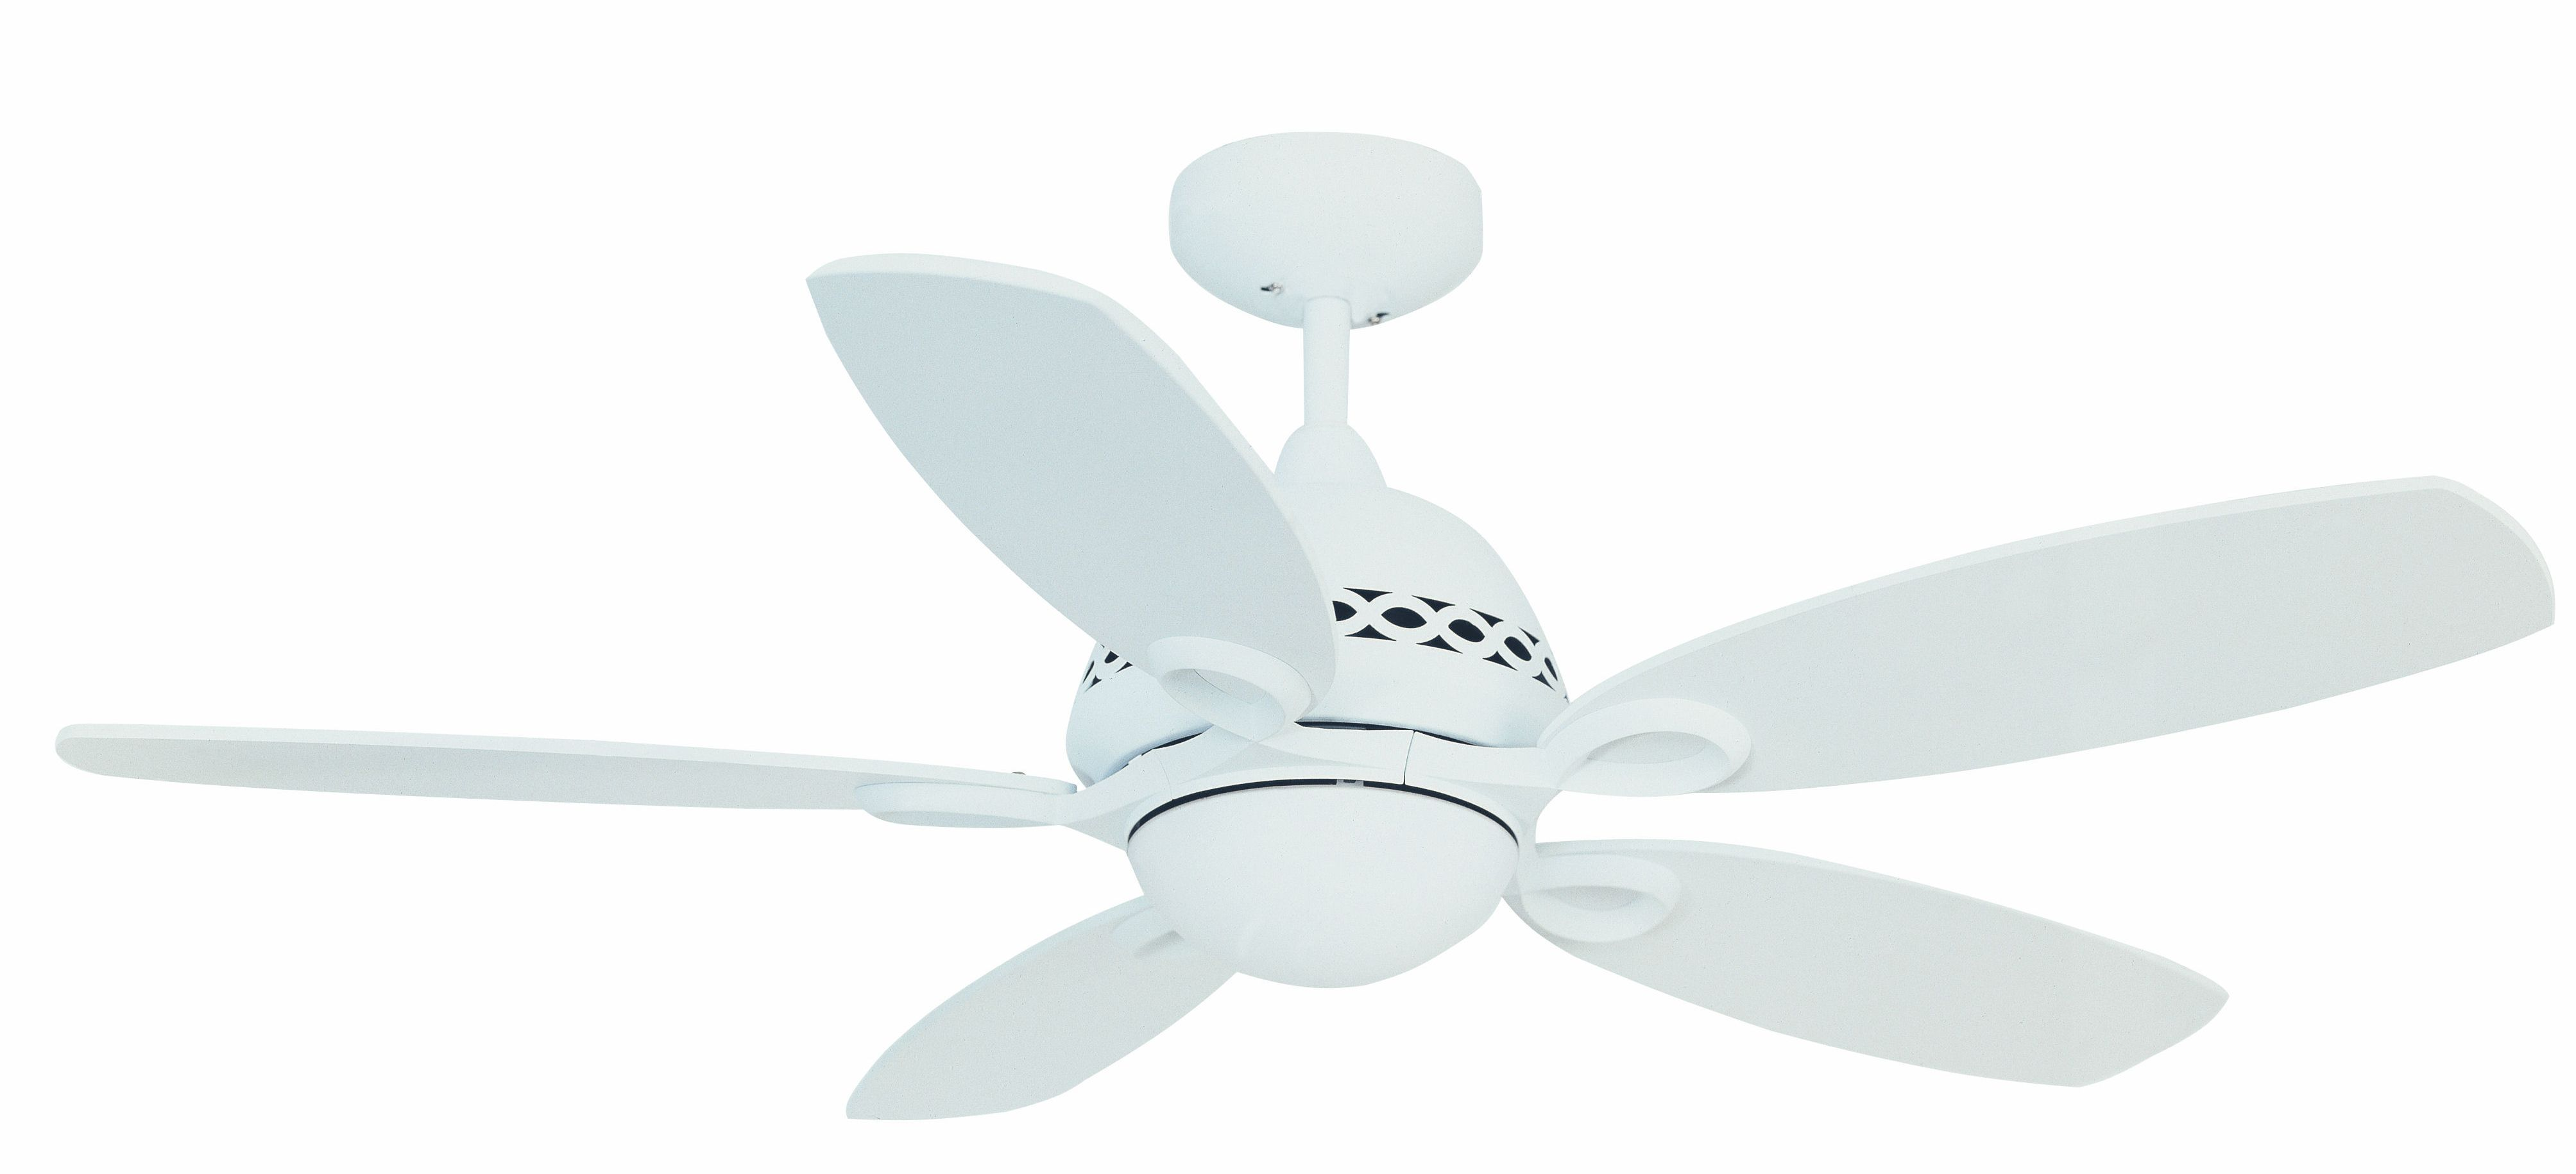 Fantasia Phoenix 42 Matt White Ceiling Fan Remote Control